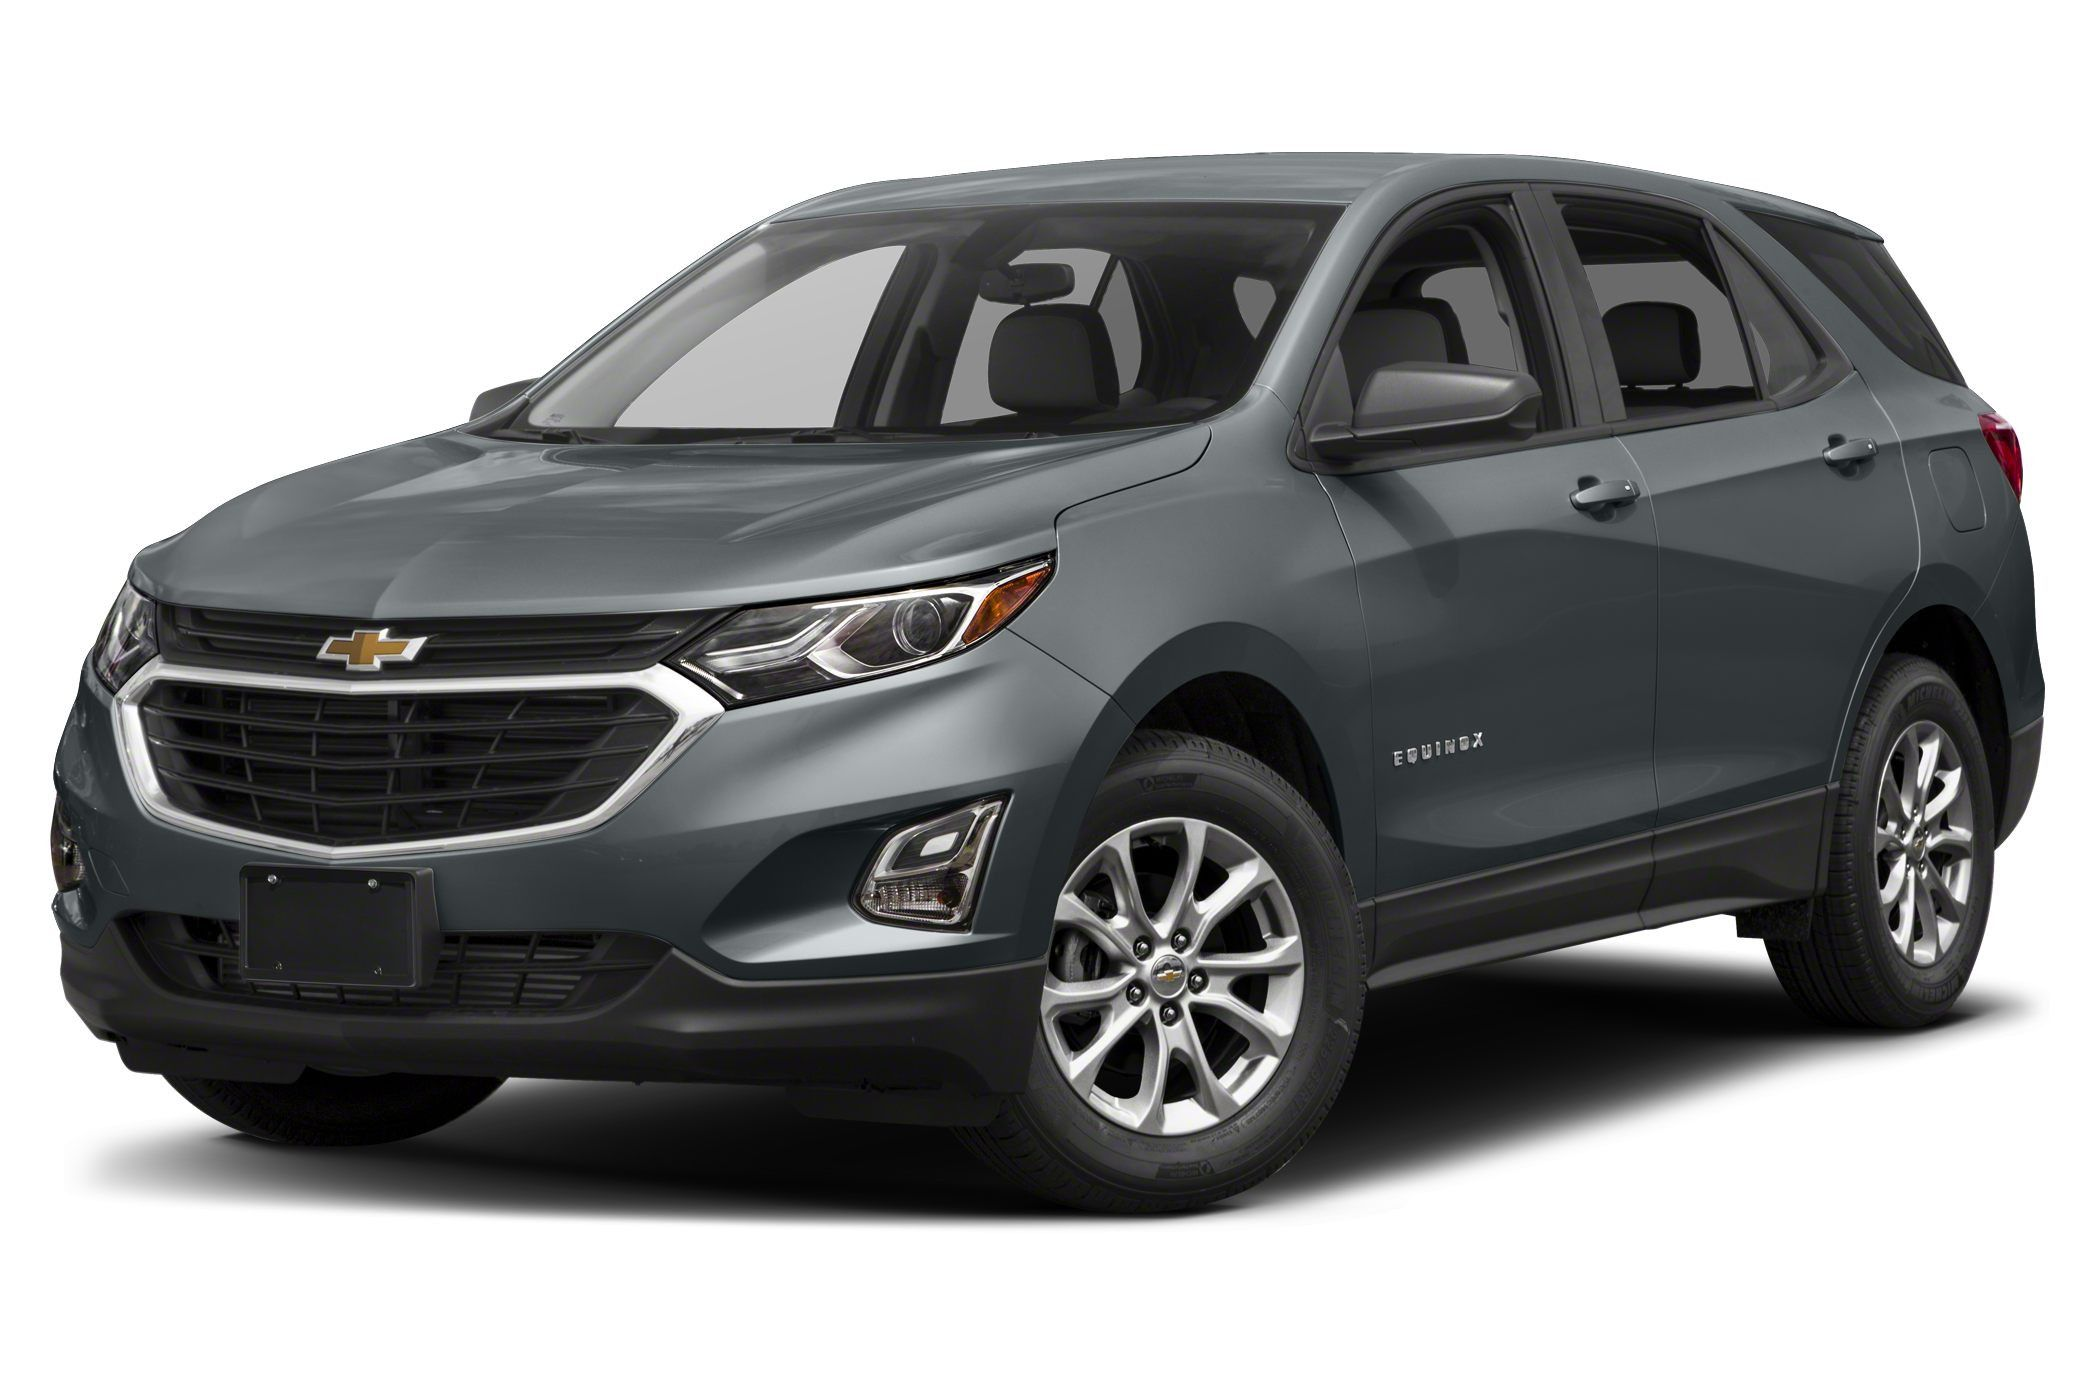 2018 Chevy Equinox towing Capacity Check more at http